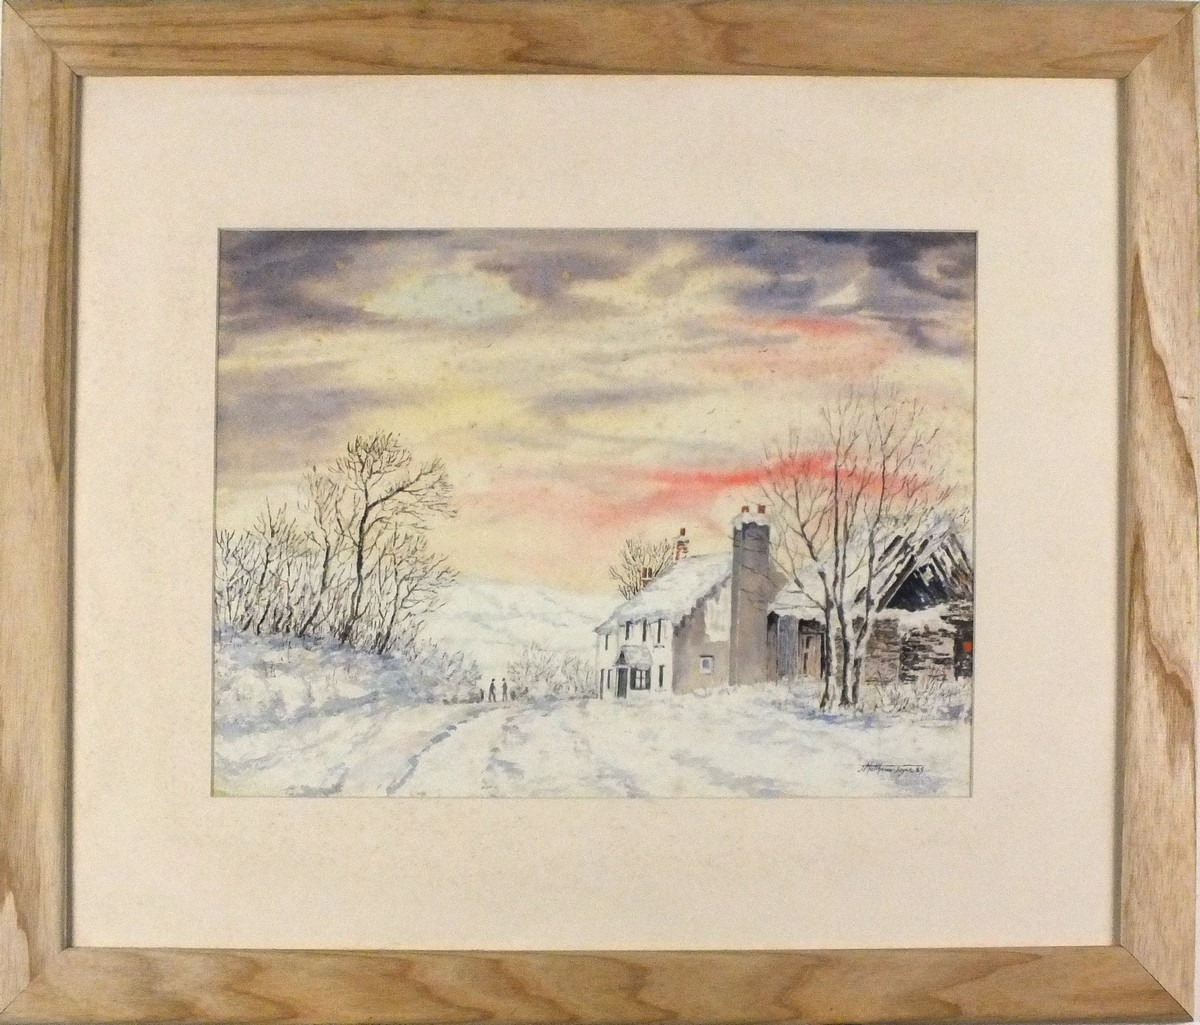 Lot 23 - Matthew JOYCE (British 20th Century) Winter Scene with a Cottage, Signed and dated '89 lower